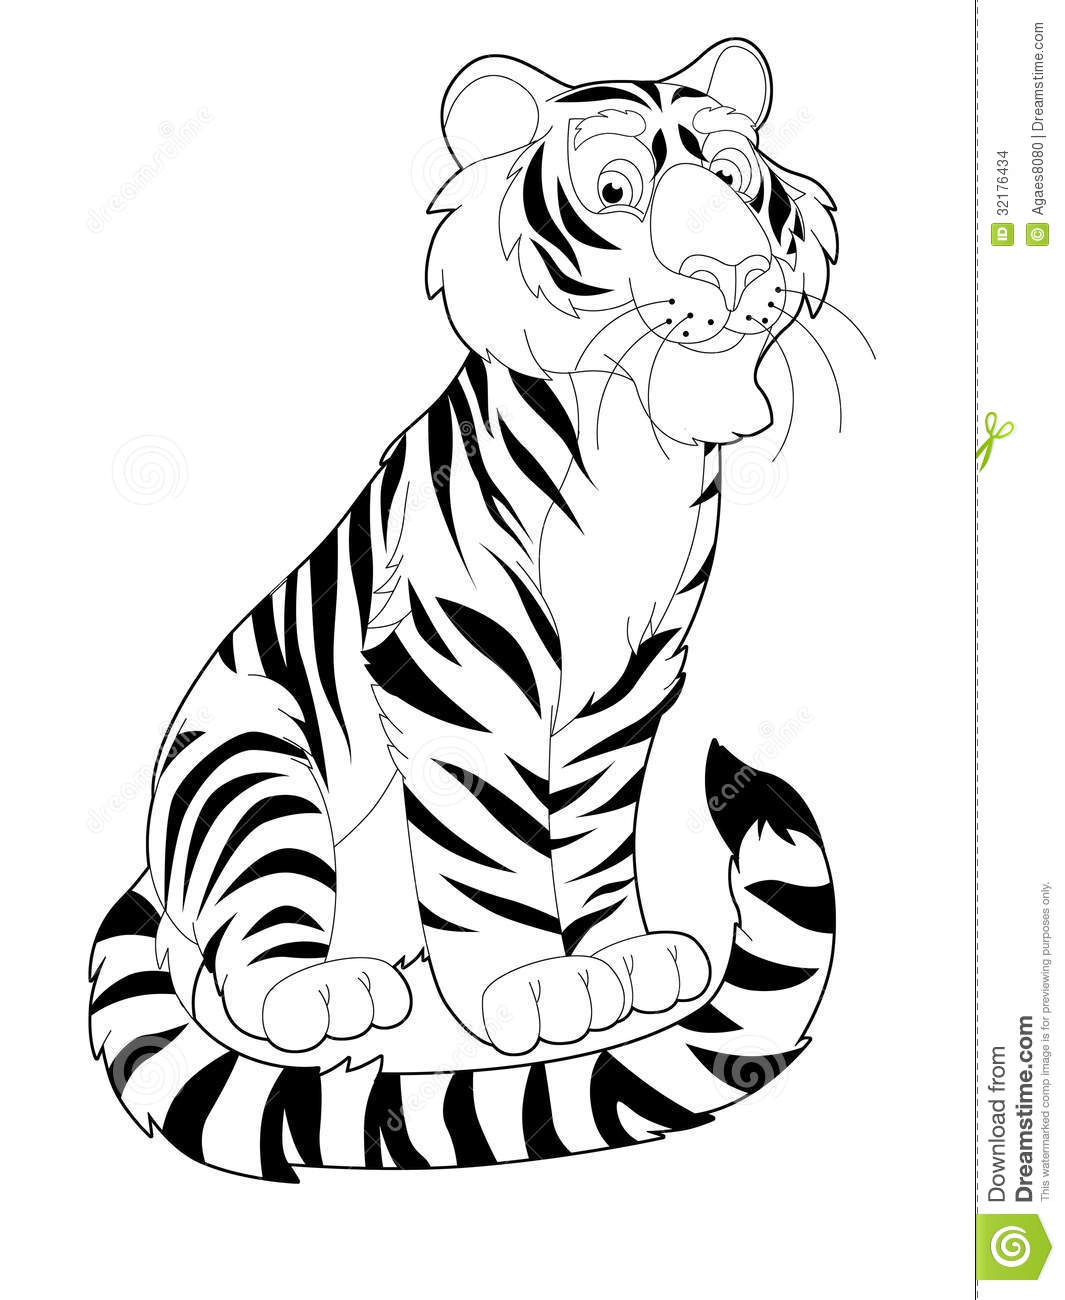 safari animals coloring pages - photo#38